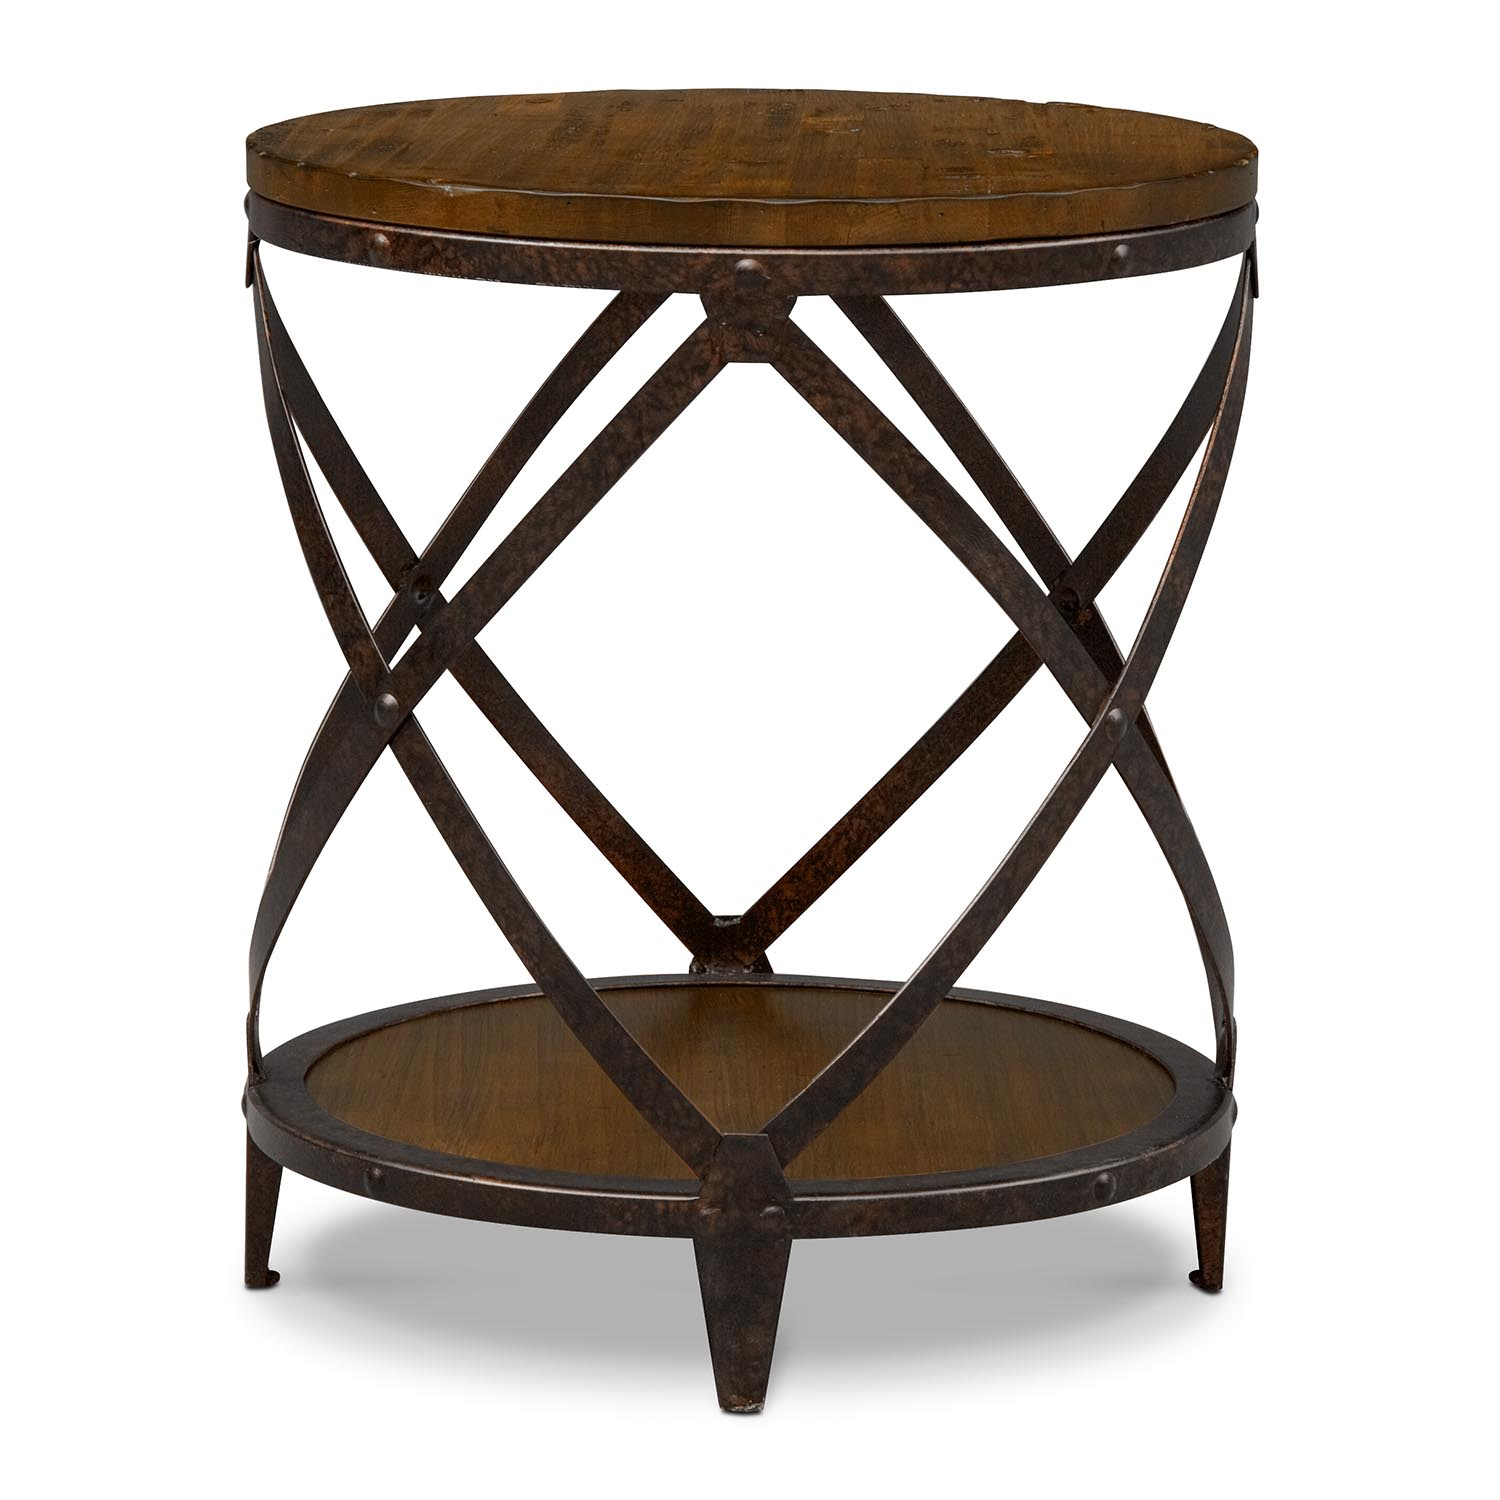 Round Coffee Table And End Tables Rustic Round End Table Coffee Table Design Ideas